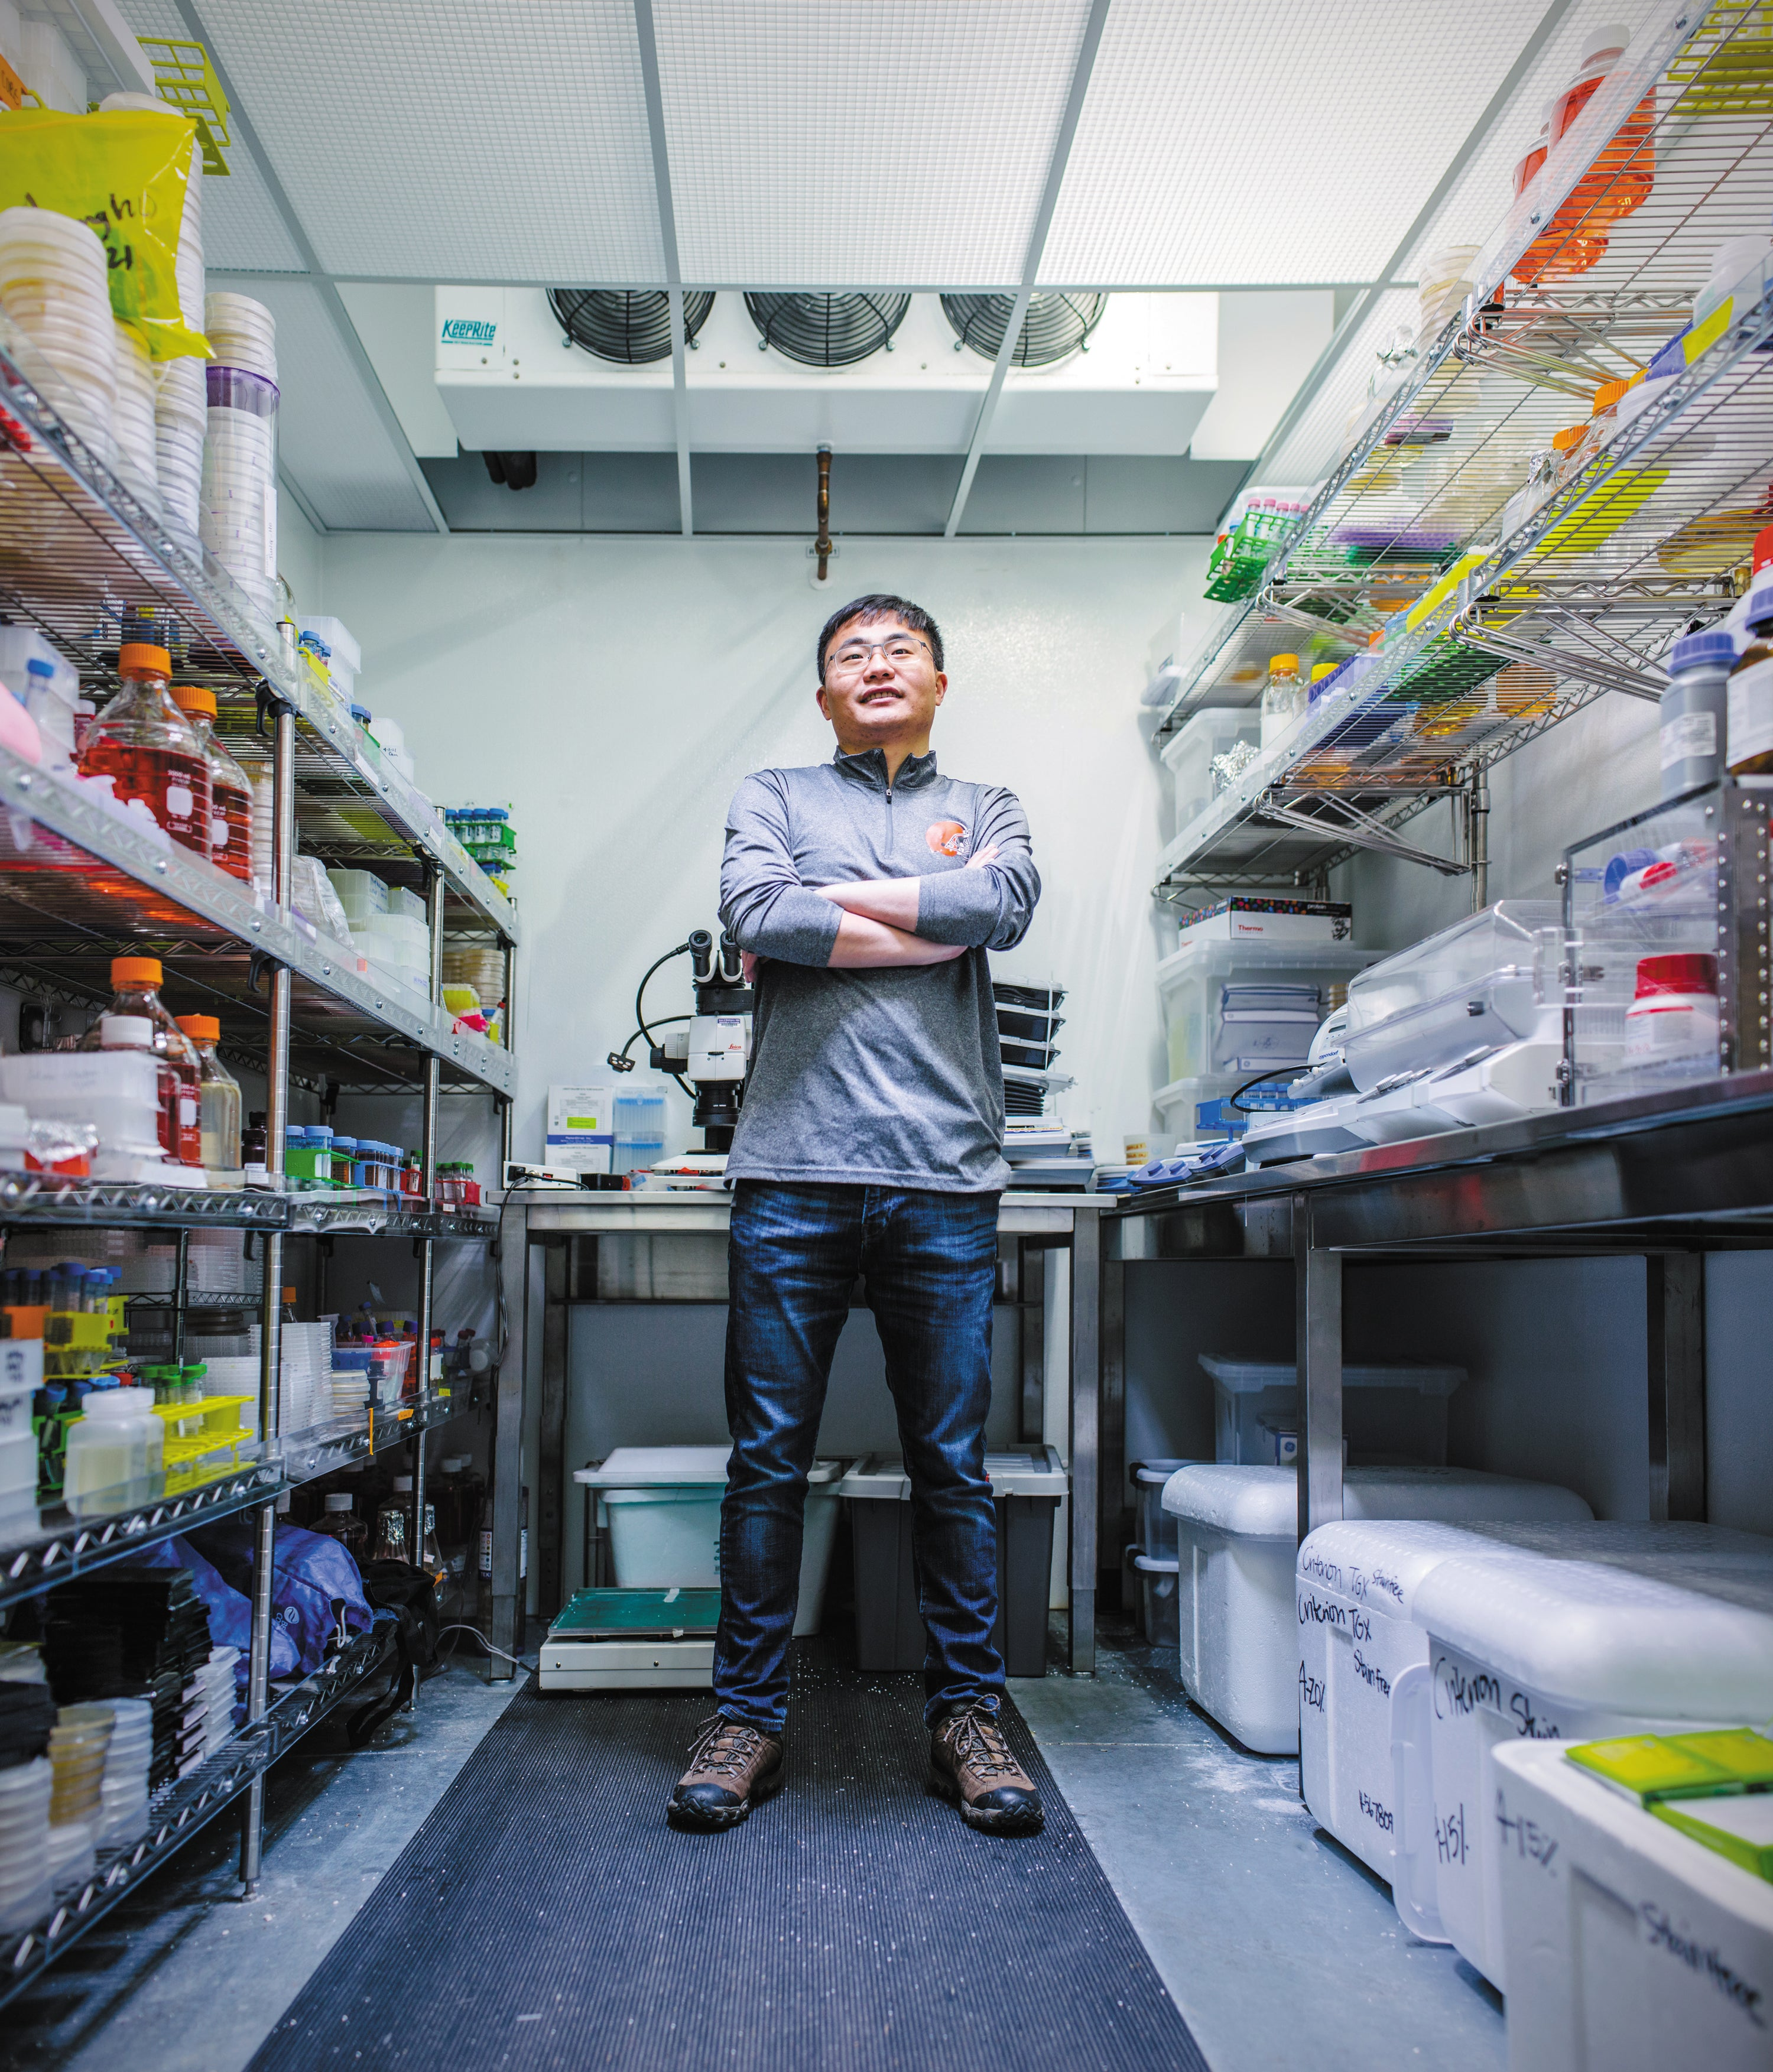 Longxing Cao in a lab.